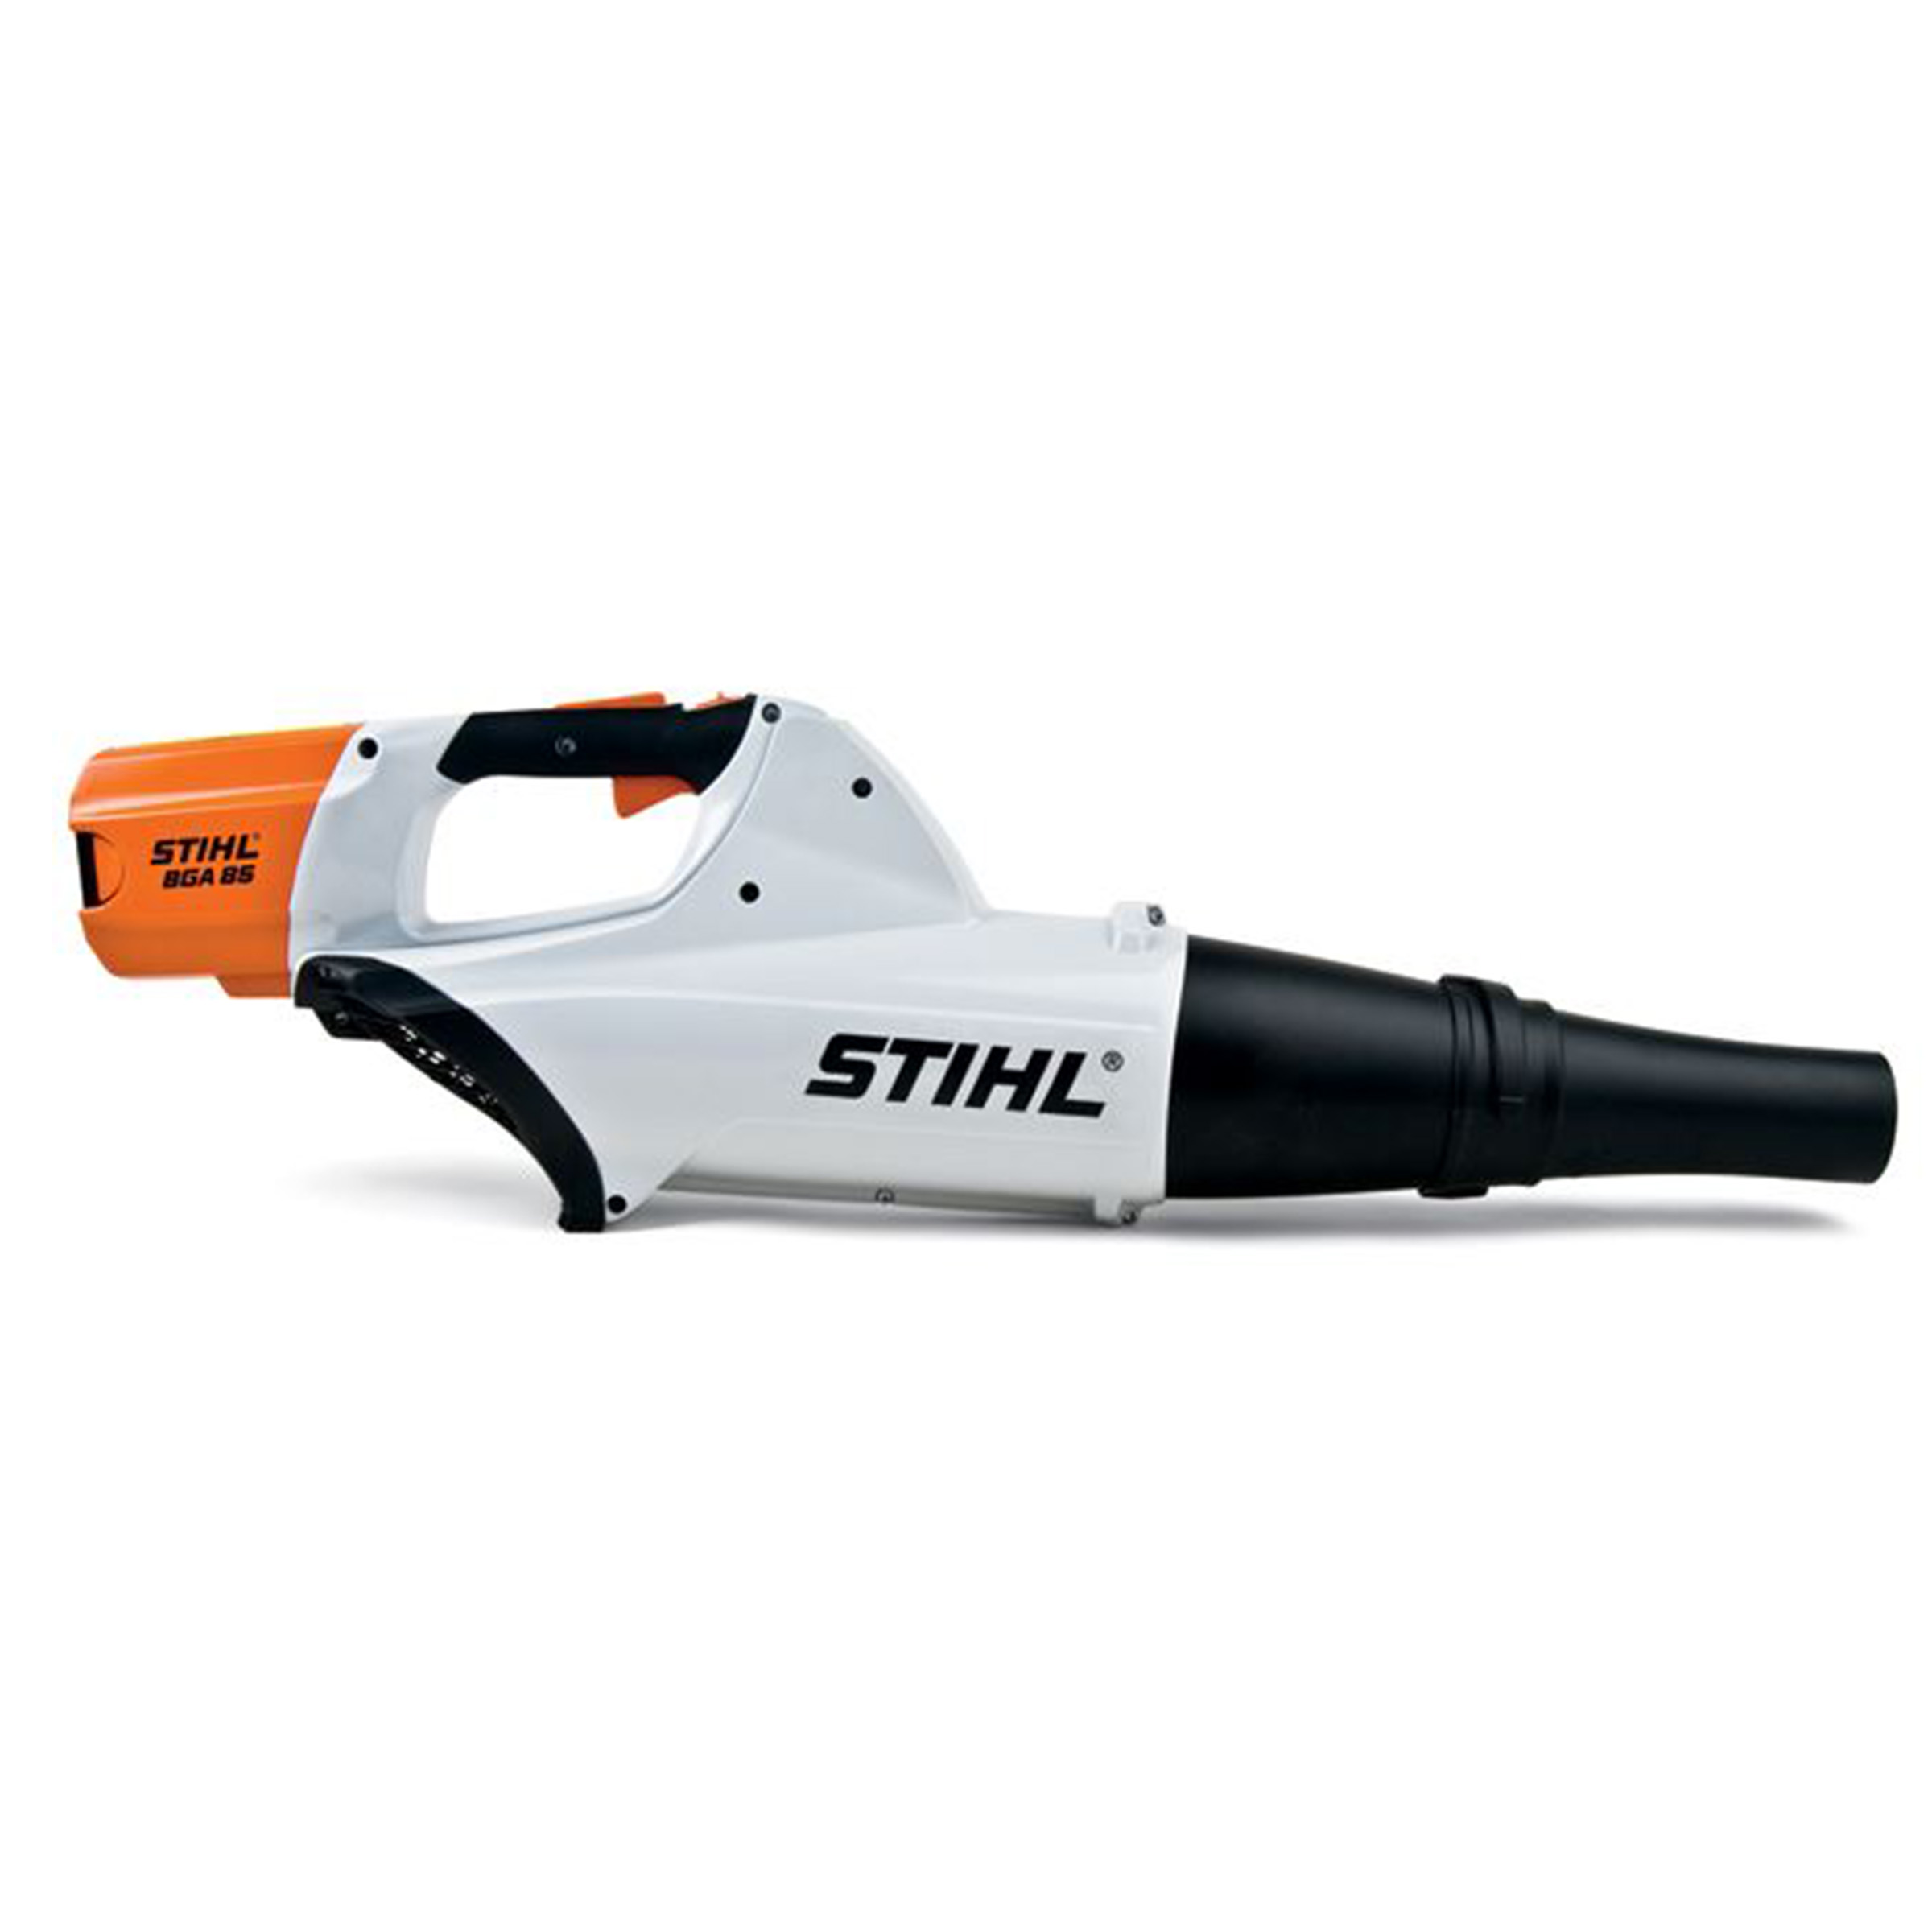 stihl bga 85 battery powered handheld blower 959915. Black Bedroom Furniture Sets. Home Design Ideas